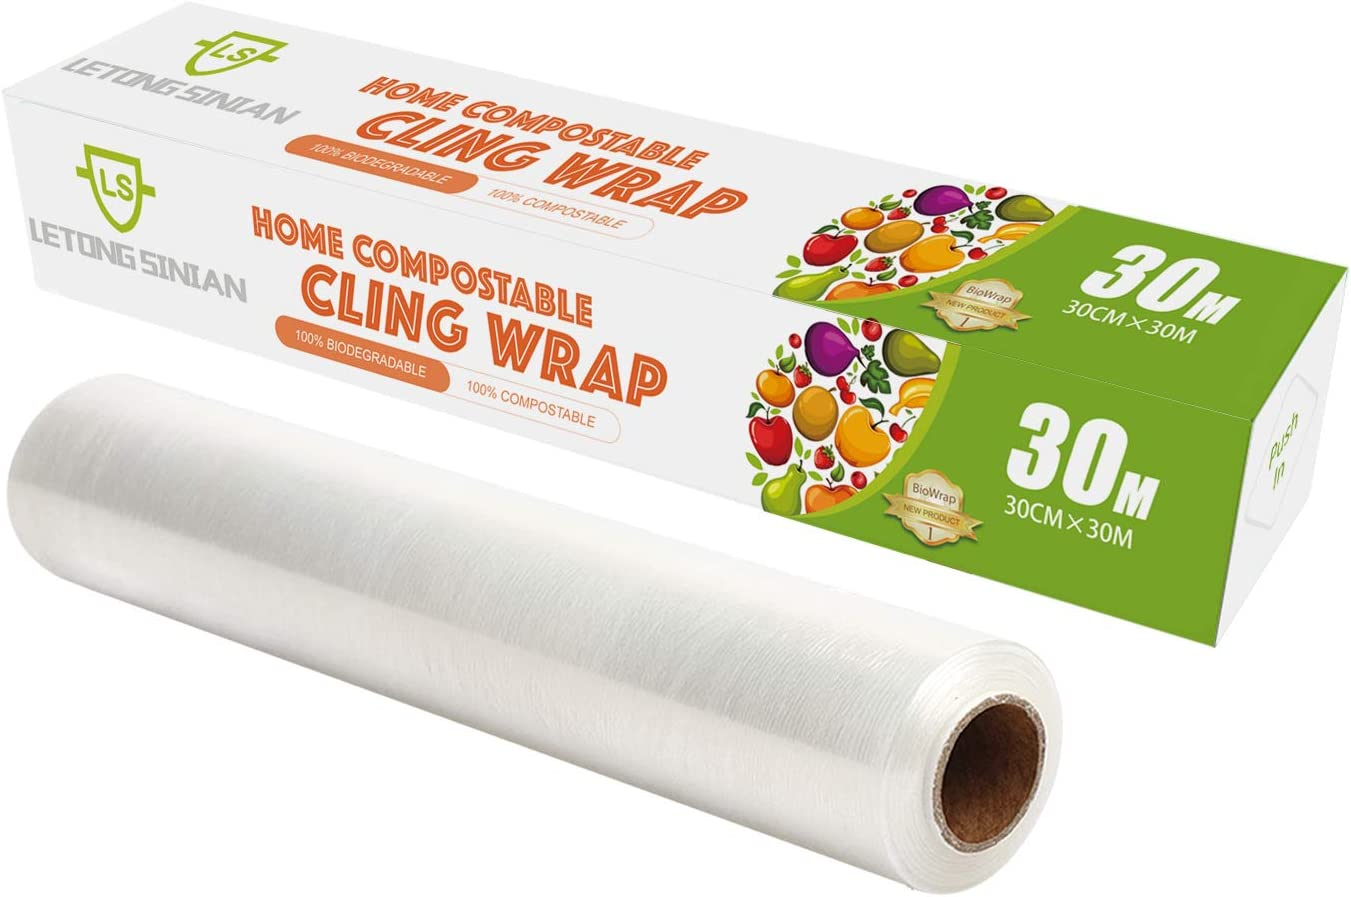 Compostable Plastic Wrap with Quick Slide Cutter Biodegradable Cling Wrap for Food, Leak-Proof BPA-Free Eco-Friendly Plastic Food Wrap Roll Cling Film